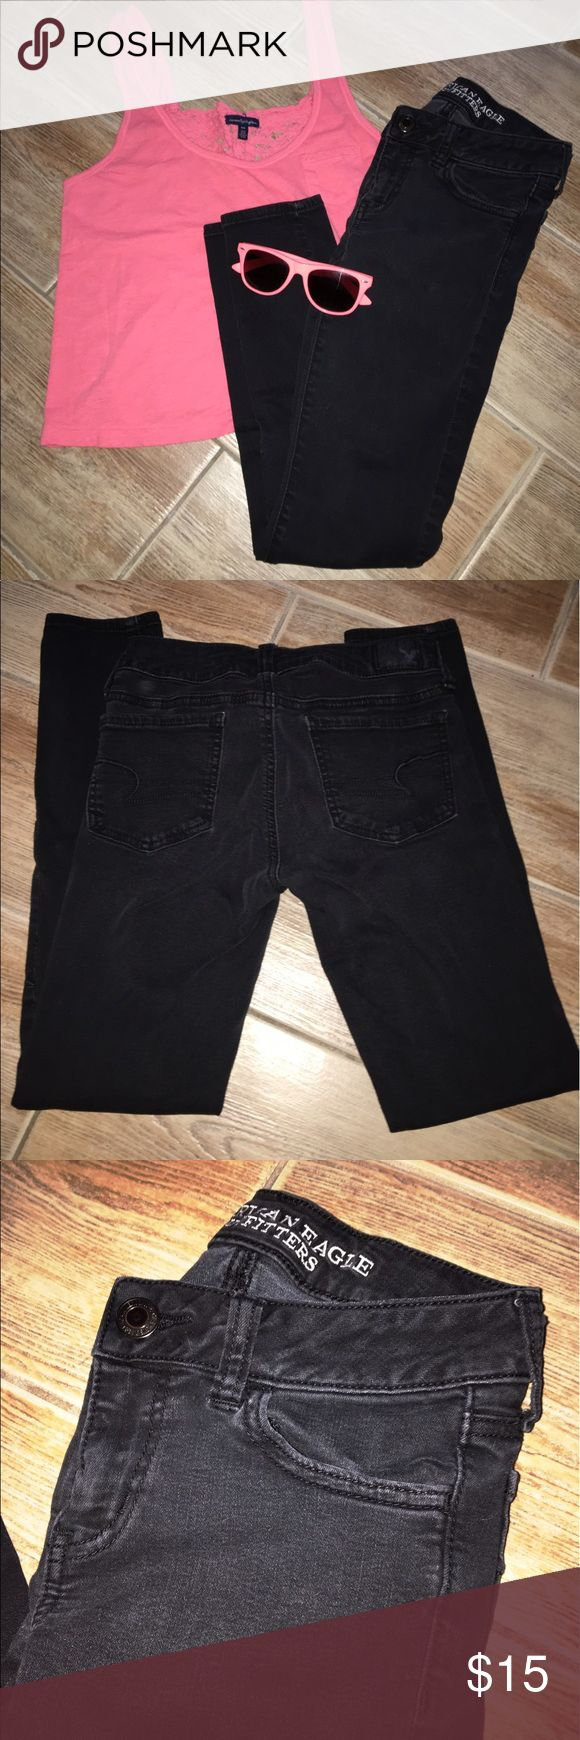 American Eagle Jegging Skinny Jeans Comfy and stretchy jegging jeans from American Eagle. They're black but slightly faded, still in great condition! Size 0 short. The tank in the photo is also for sale in my closet. American Eagle Outfitters Jeans Skinny